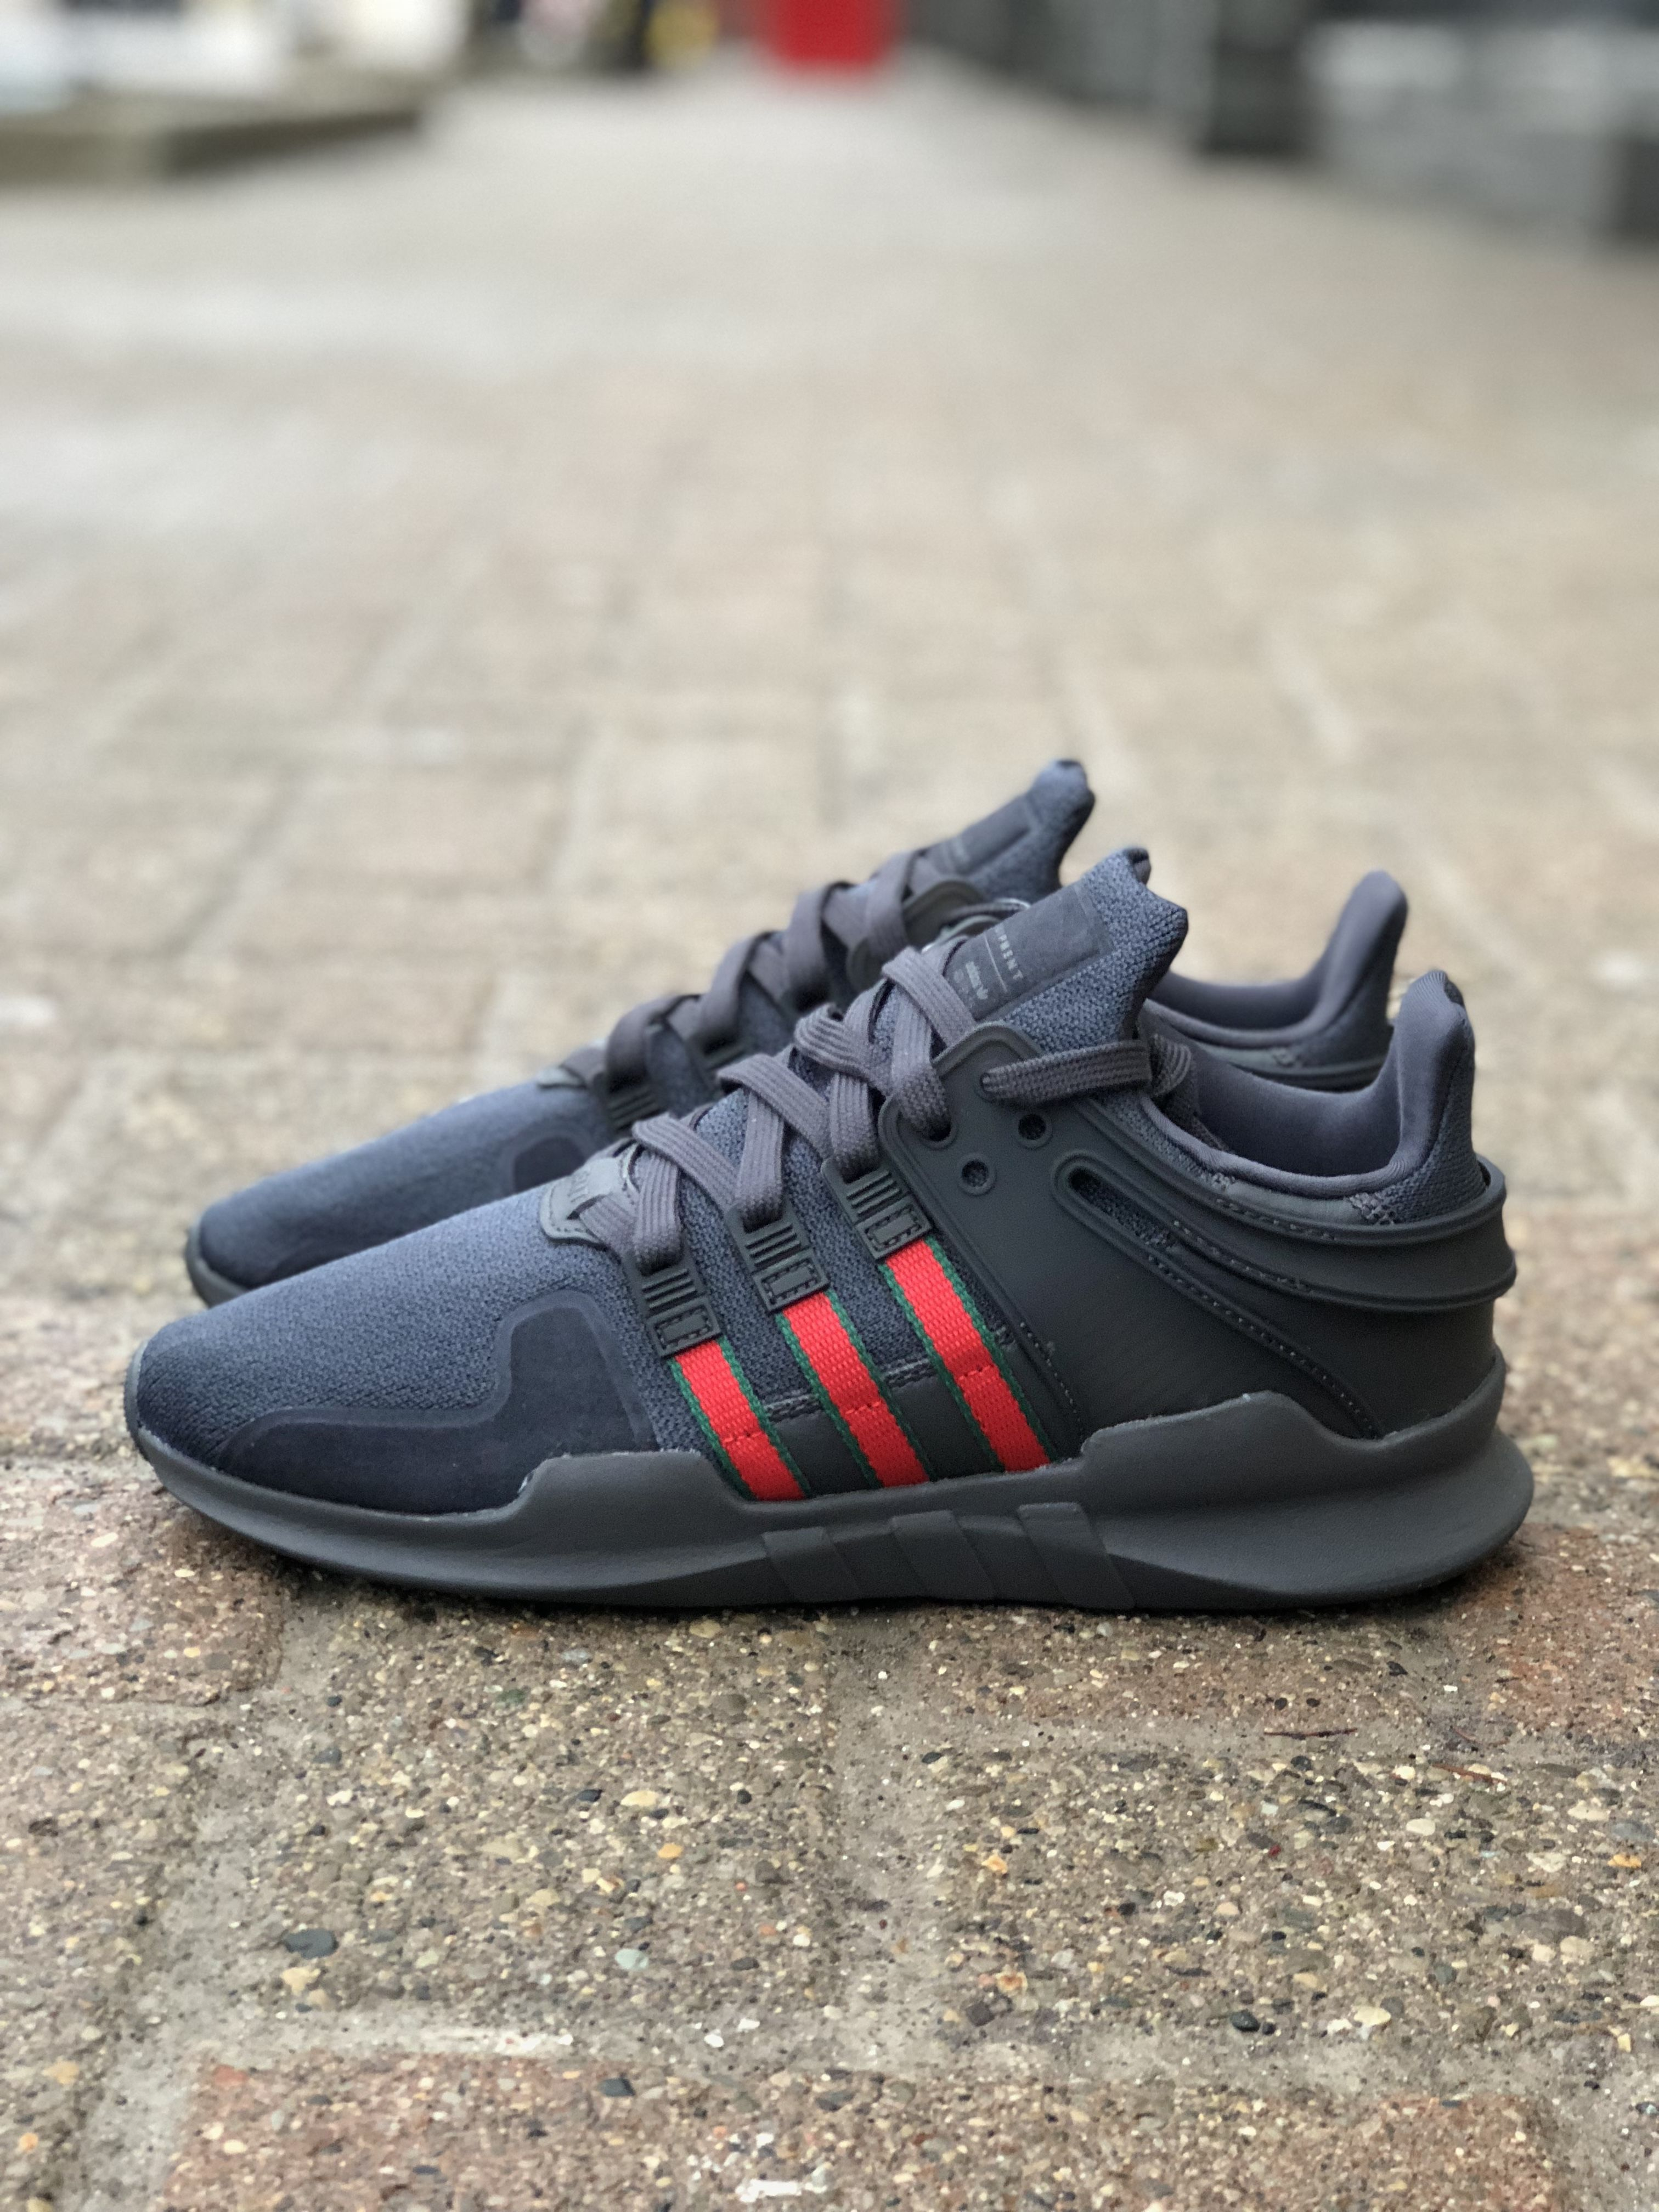 8b56ad66435 Spring Summer 2018 Collection Adidas Eqt Support ADV